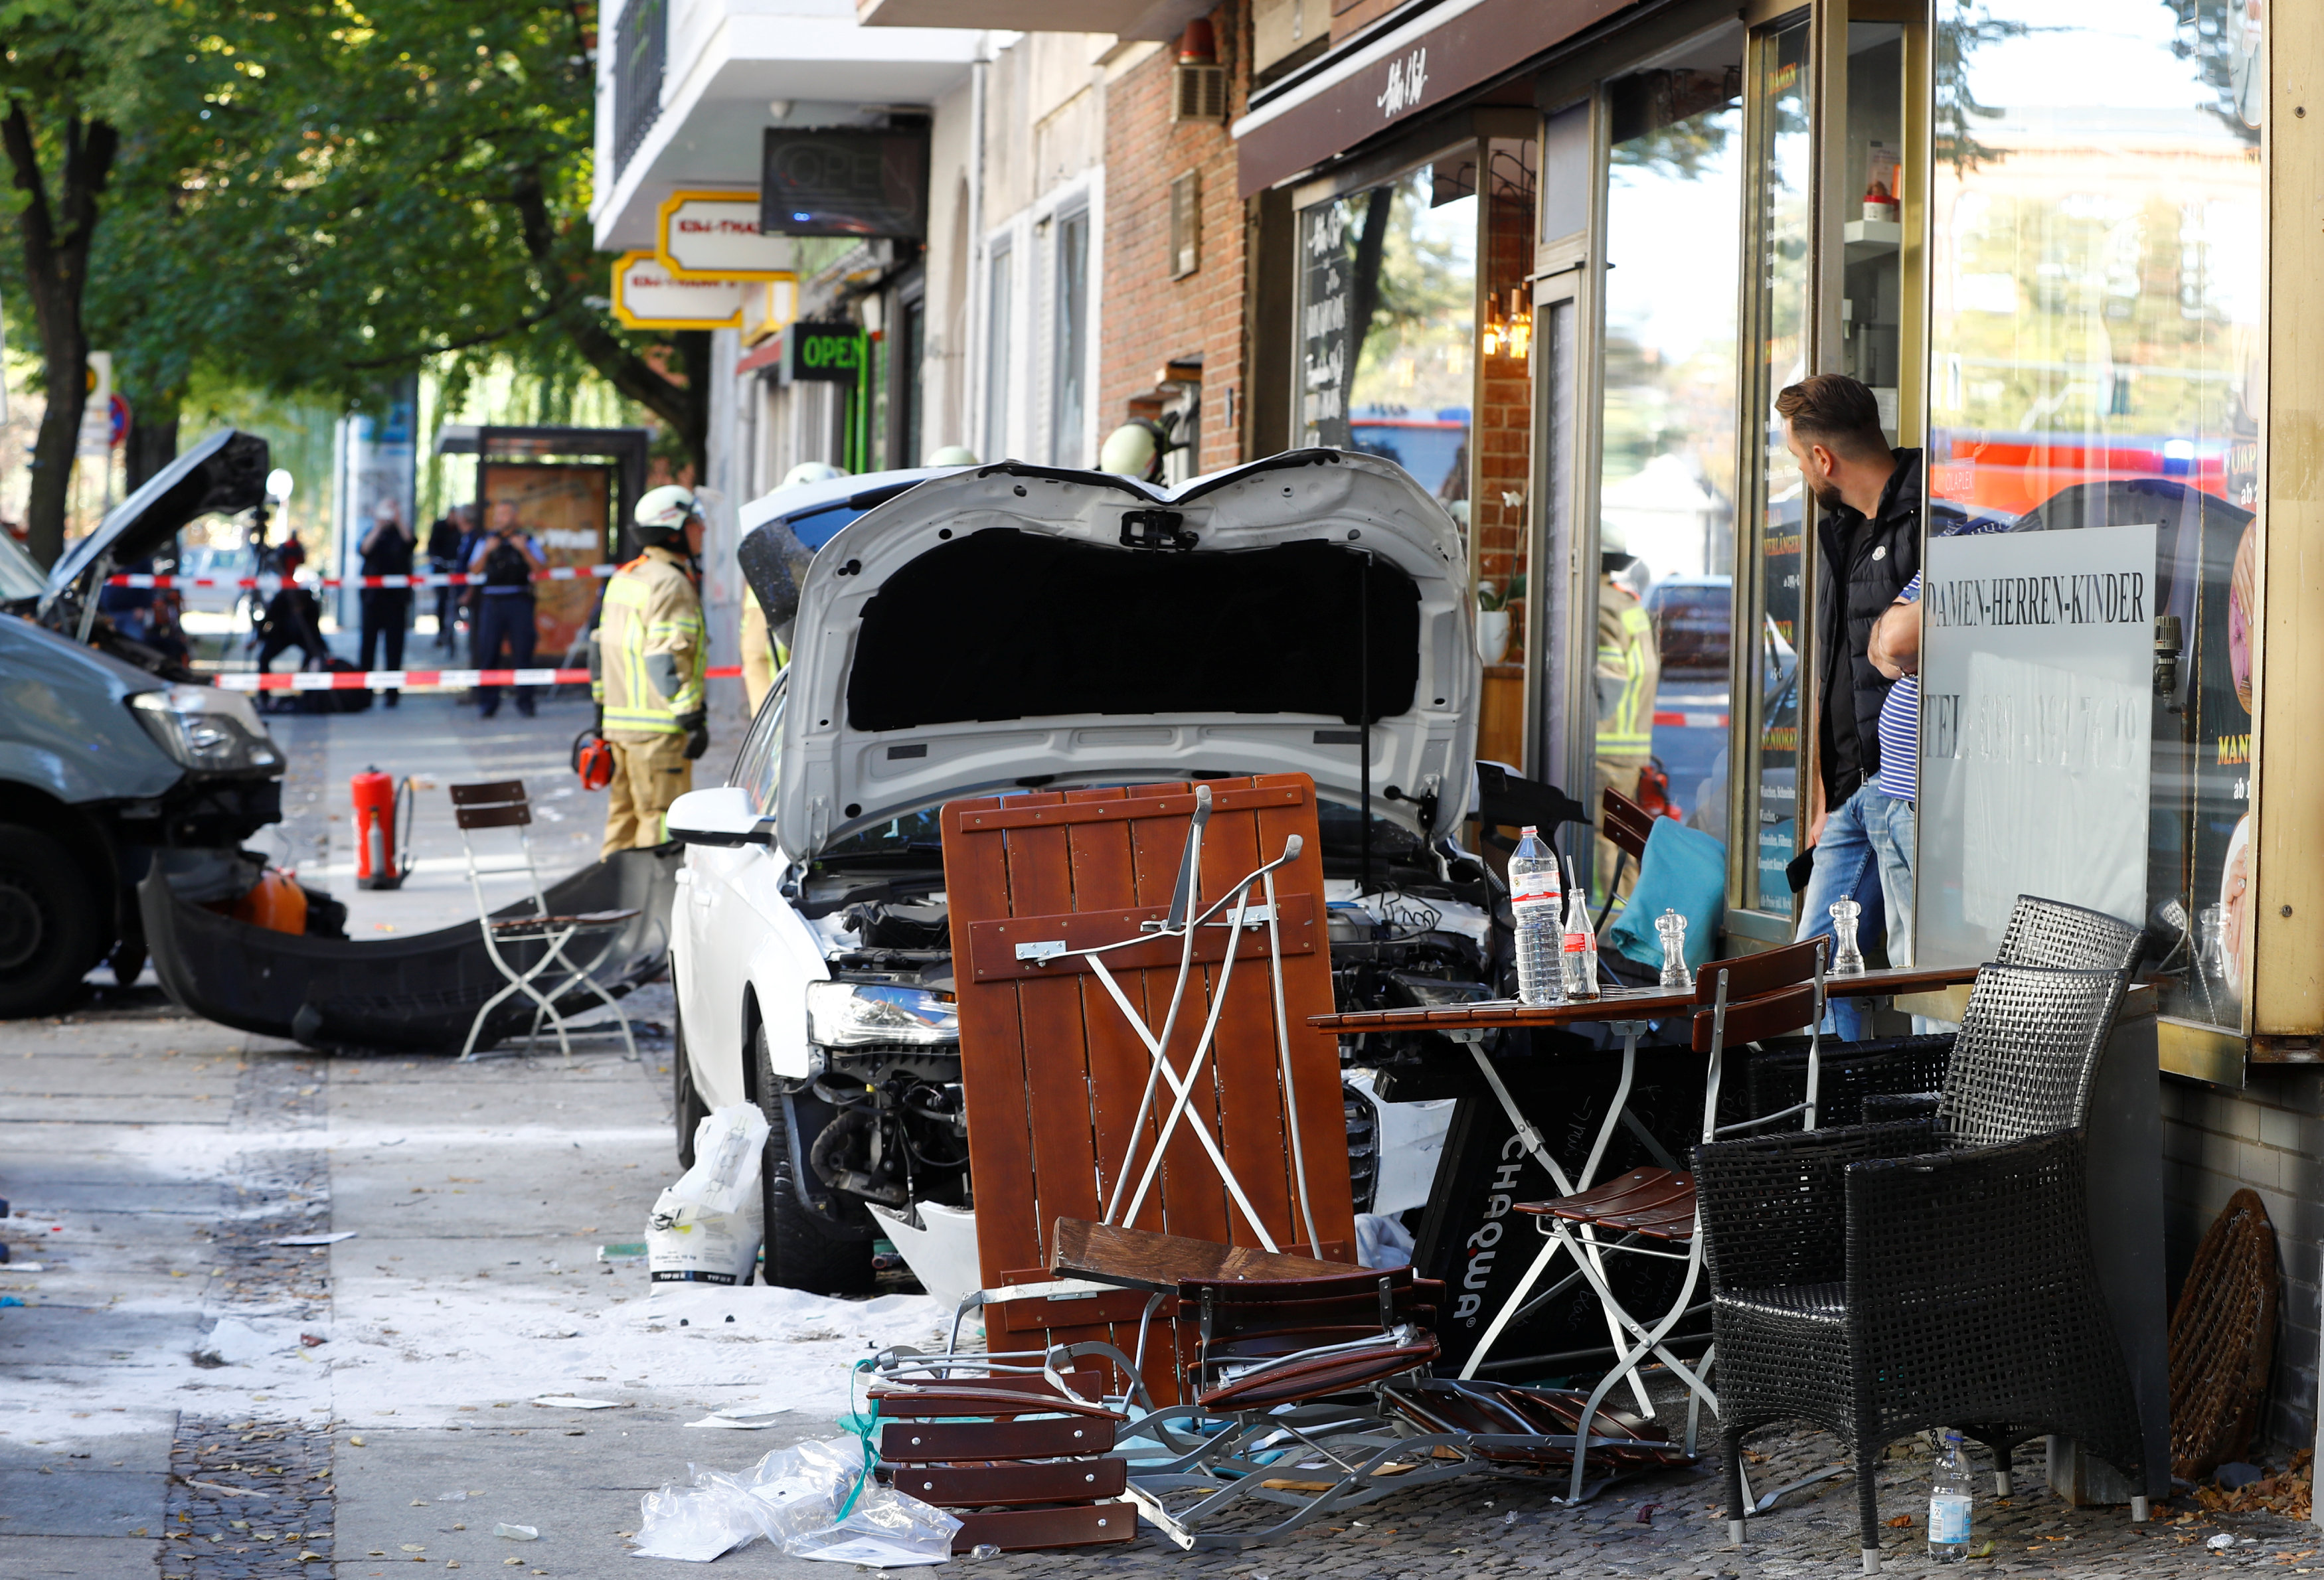 A man drove a car into a cafe in the Charlottenburg district of Berlin